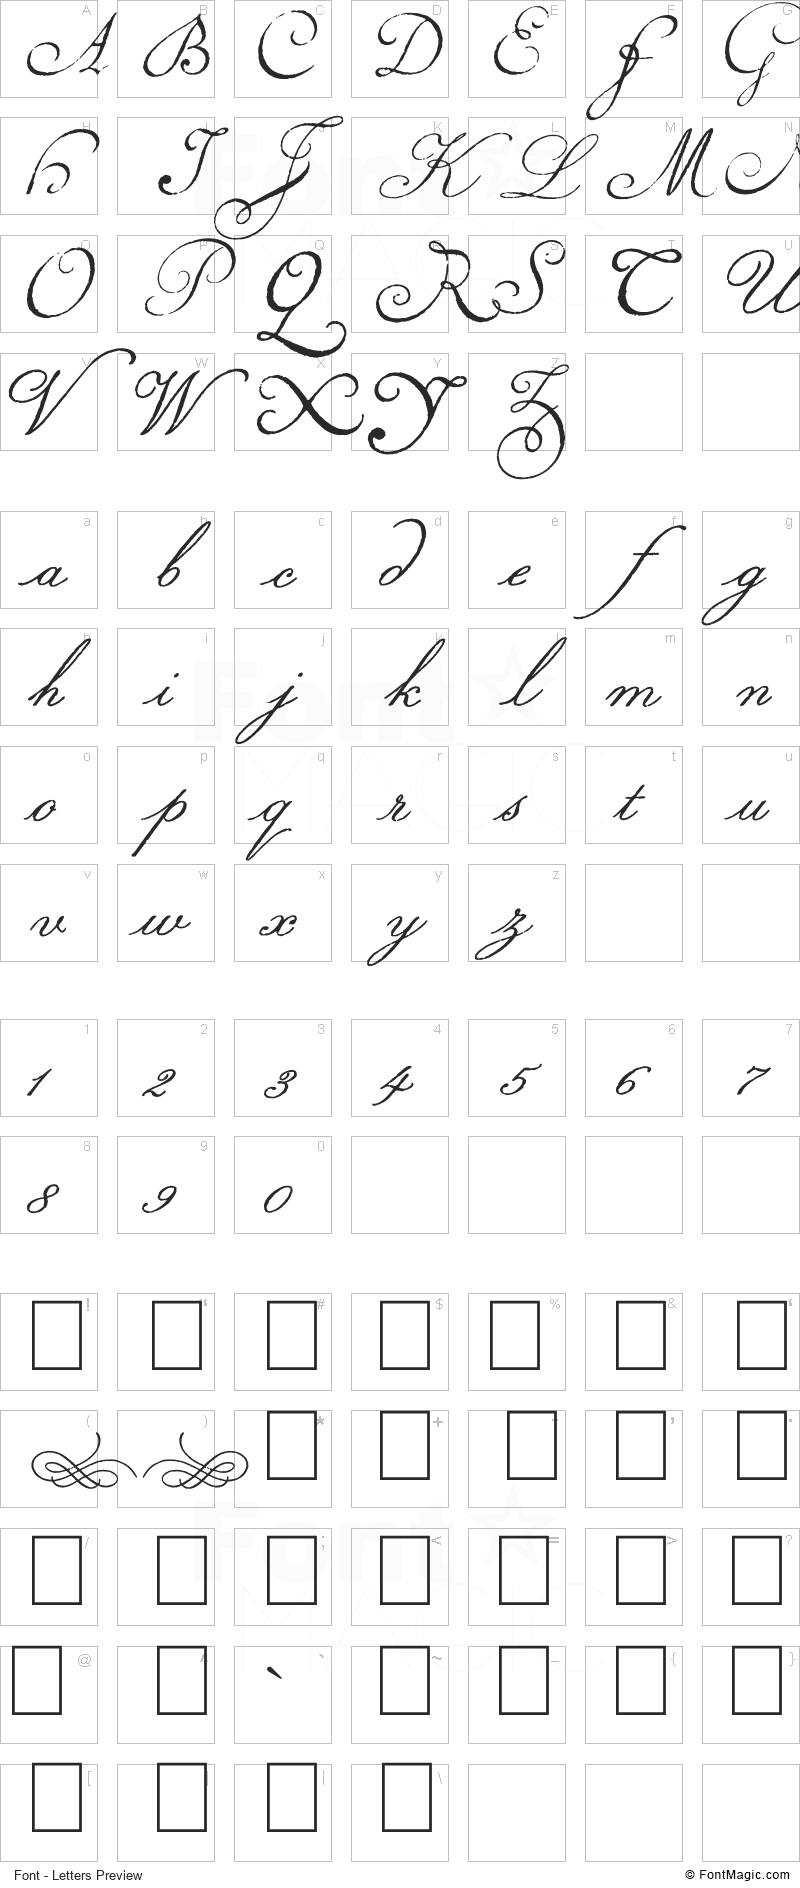 Volutes Font - All Latters Preview Chart